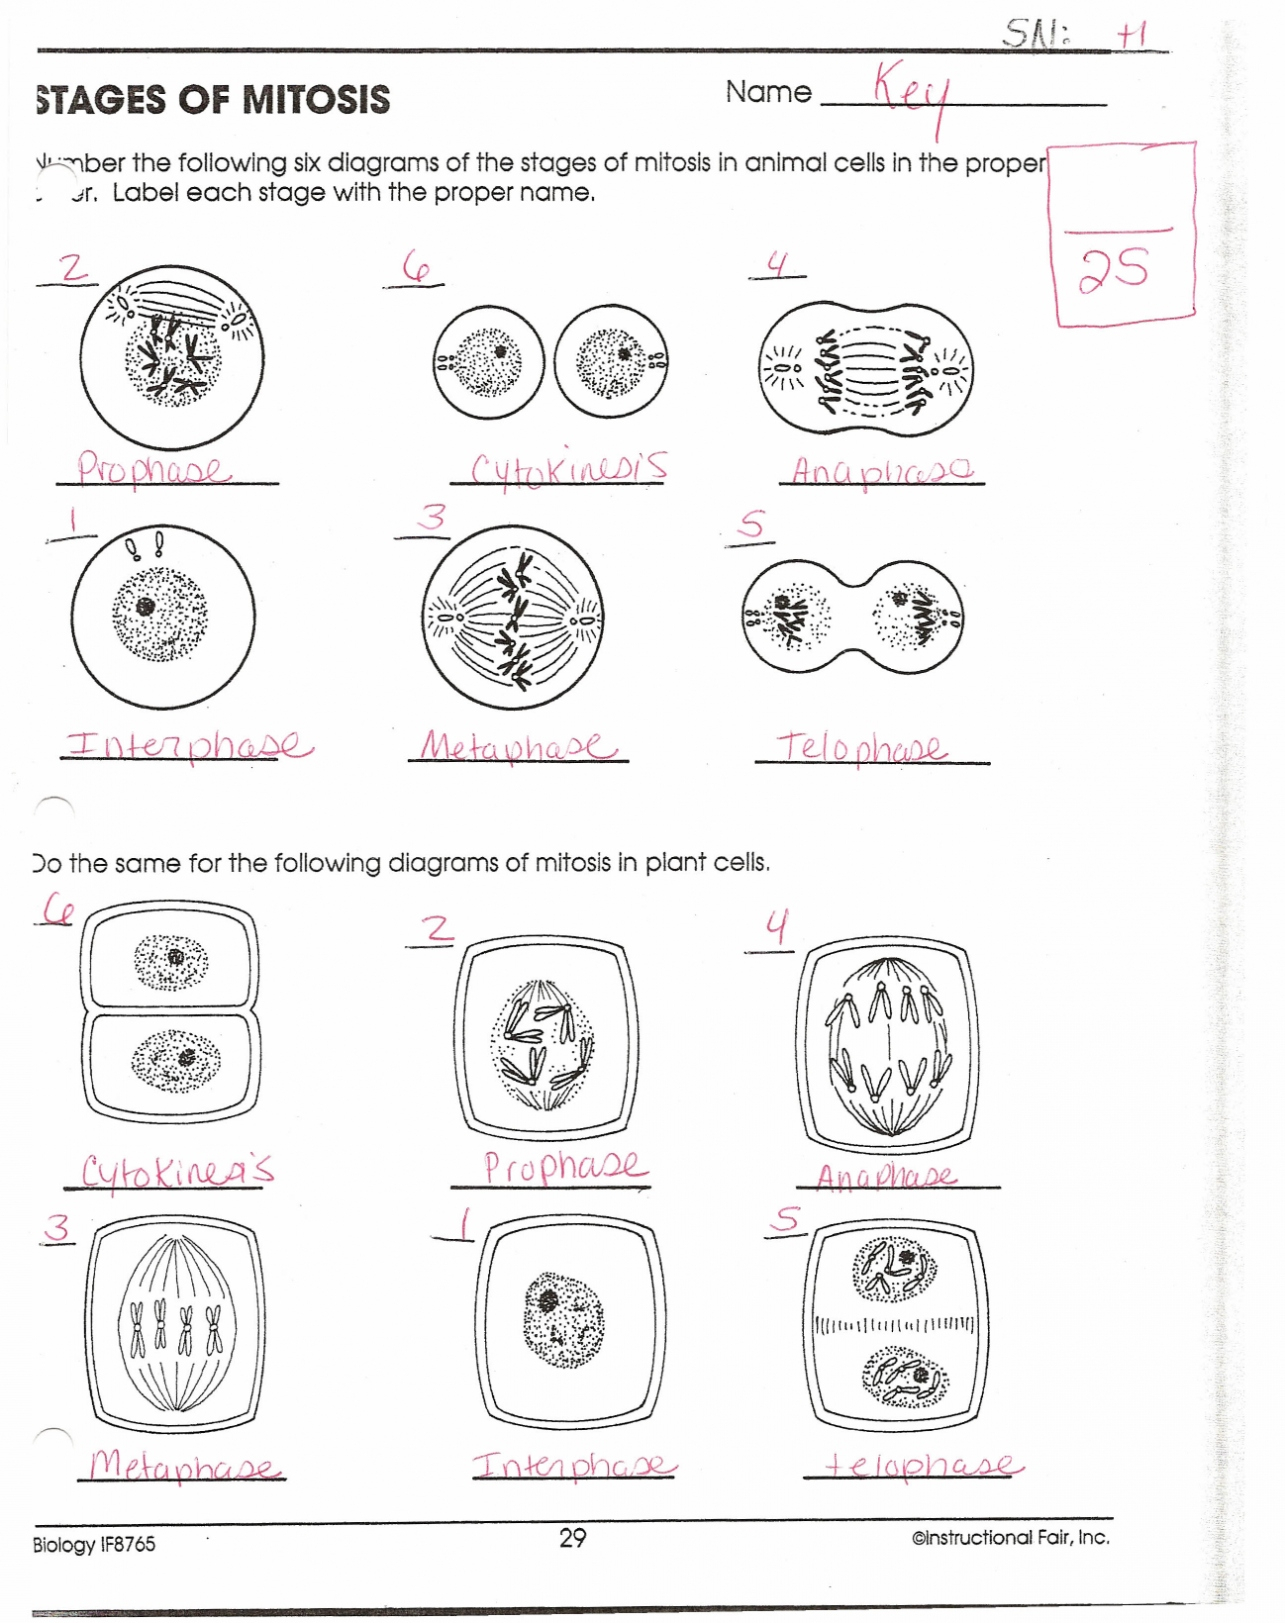 Mitosis Meiosis Venn Diagram Beneficial Mitosis Worksheet And Diagram Identification Answers